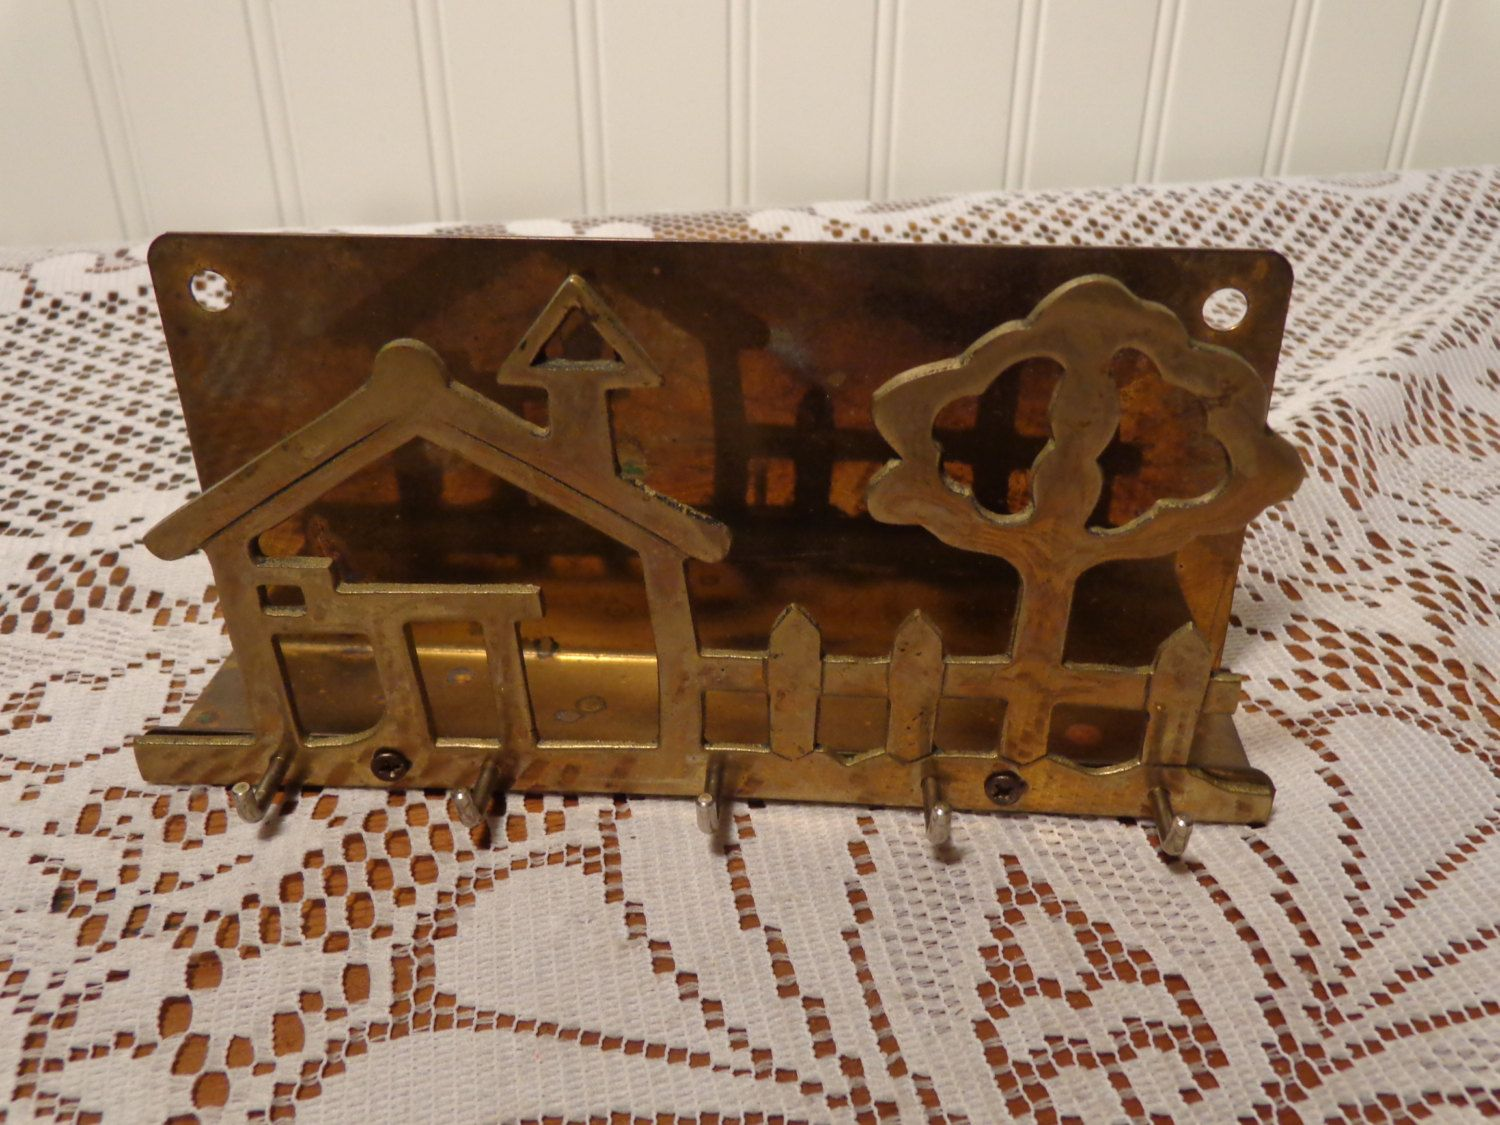 Vintage Brass Hanging Mail Rack with Pegs for Hats, Leashes, Potholders or Keys  - 16-198 by BubbiesMemories on Etsy